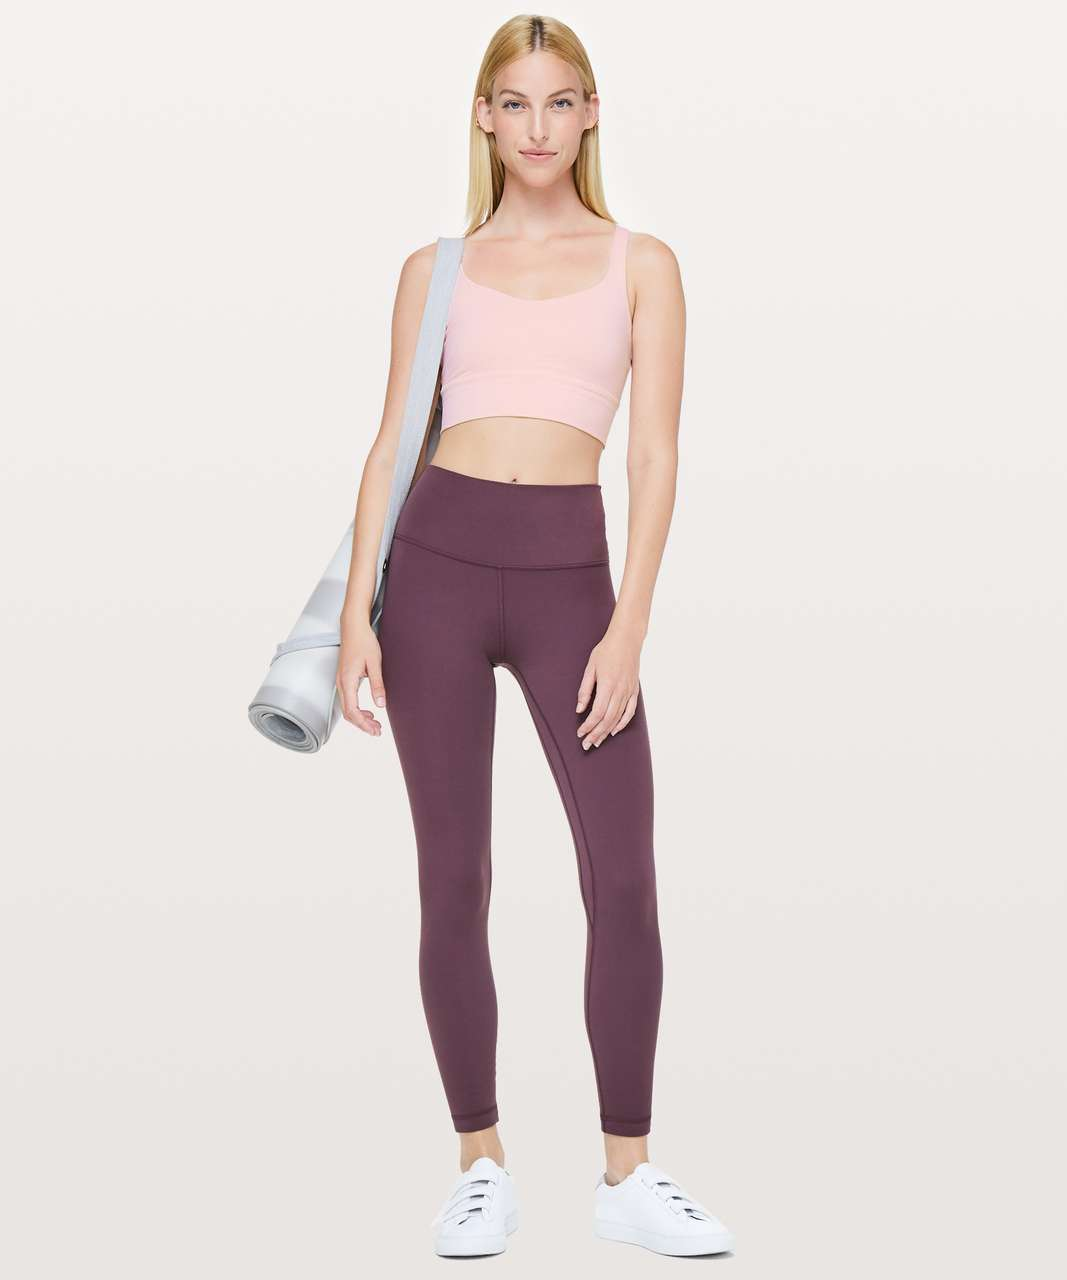 Lululemon Free To Be Bra *Long Line - Dusty Pink